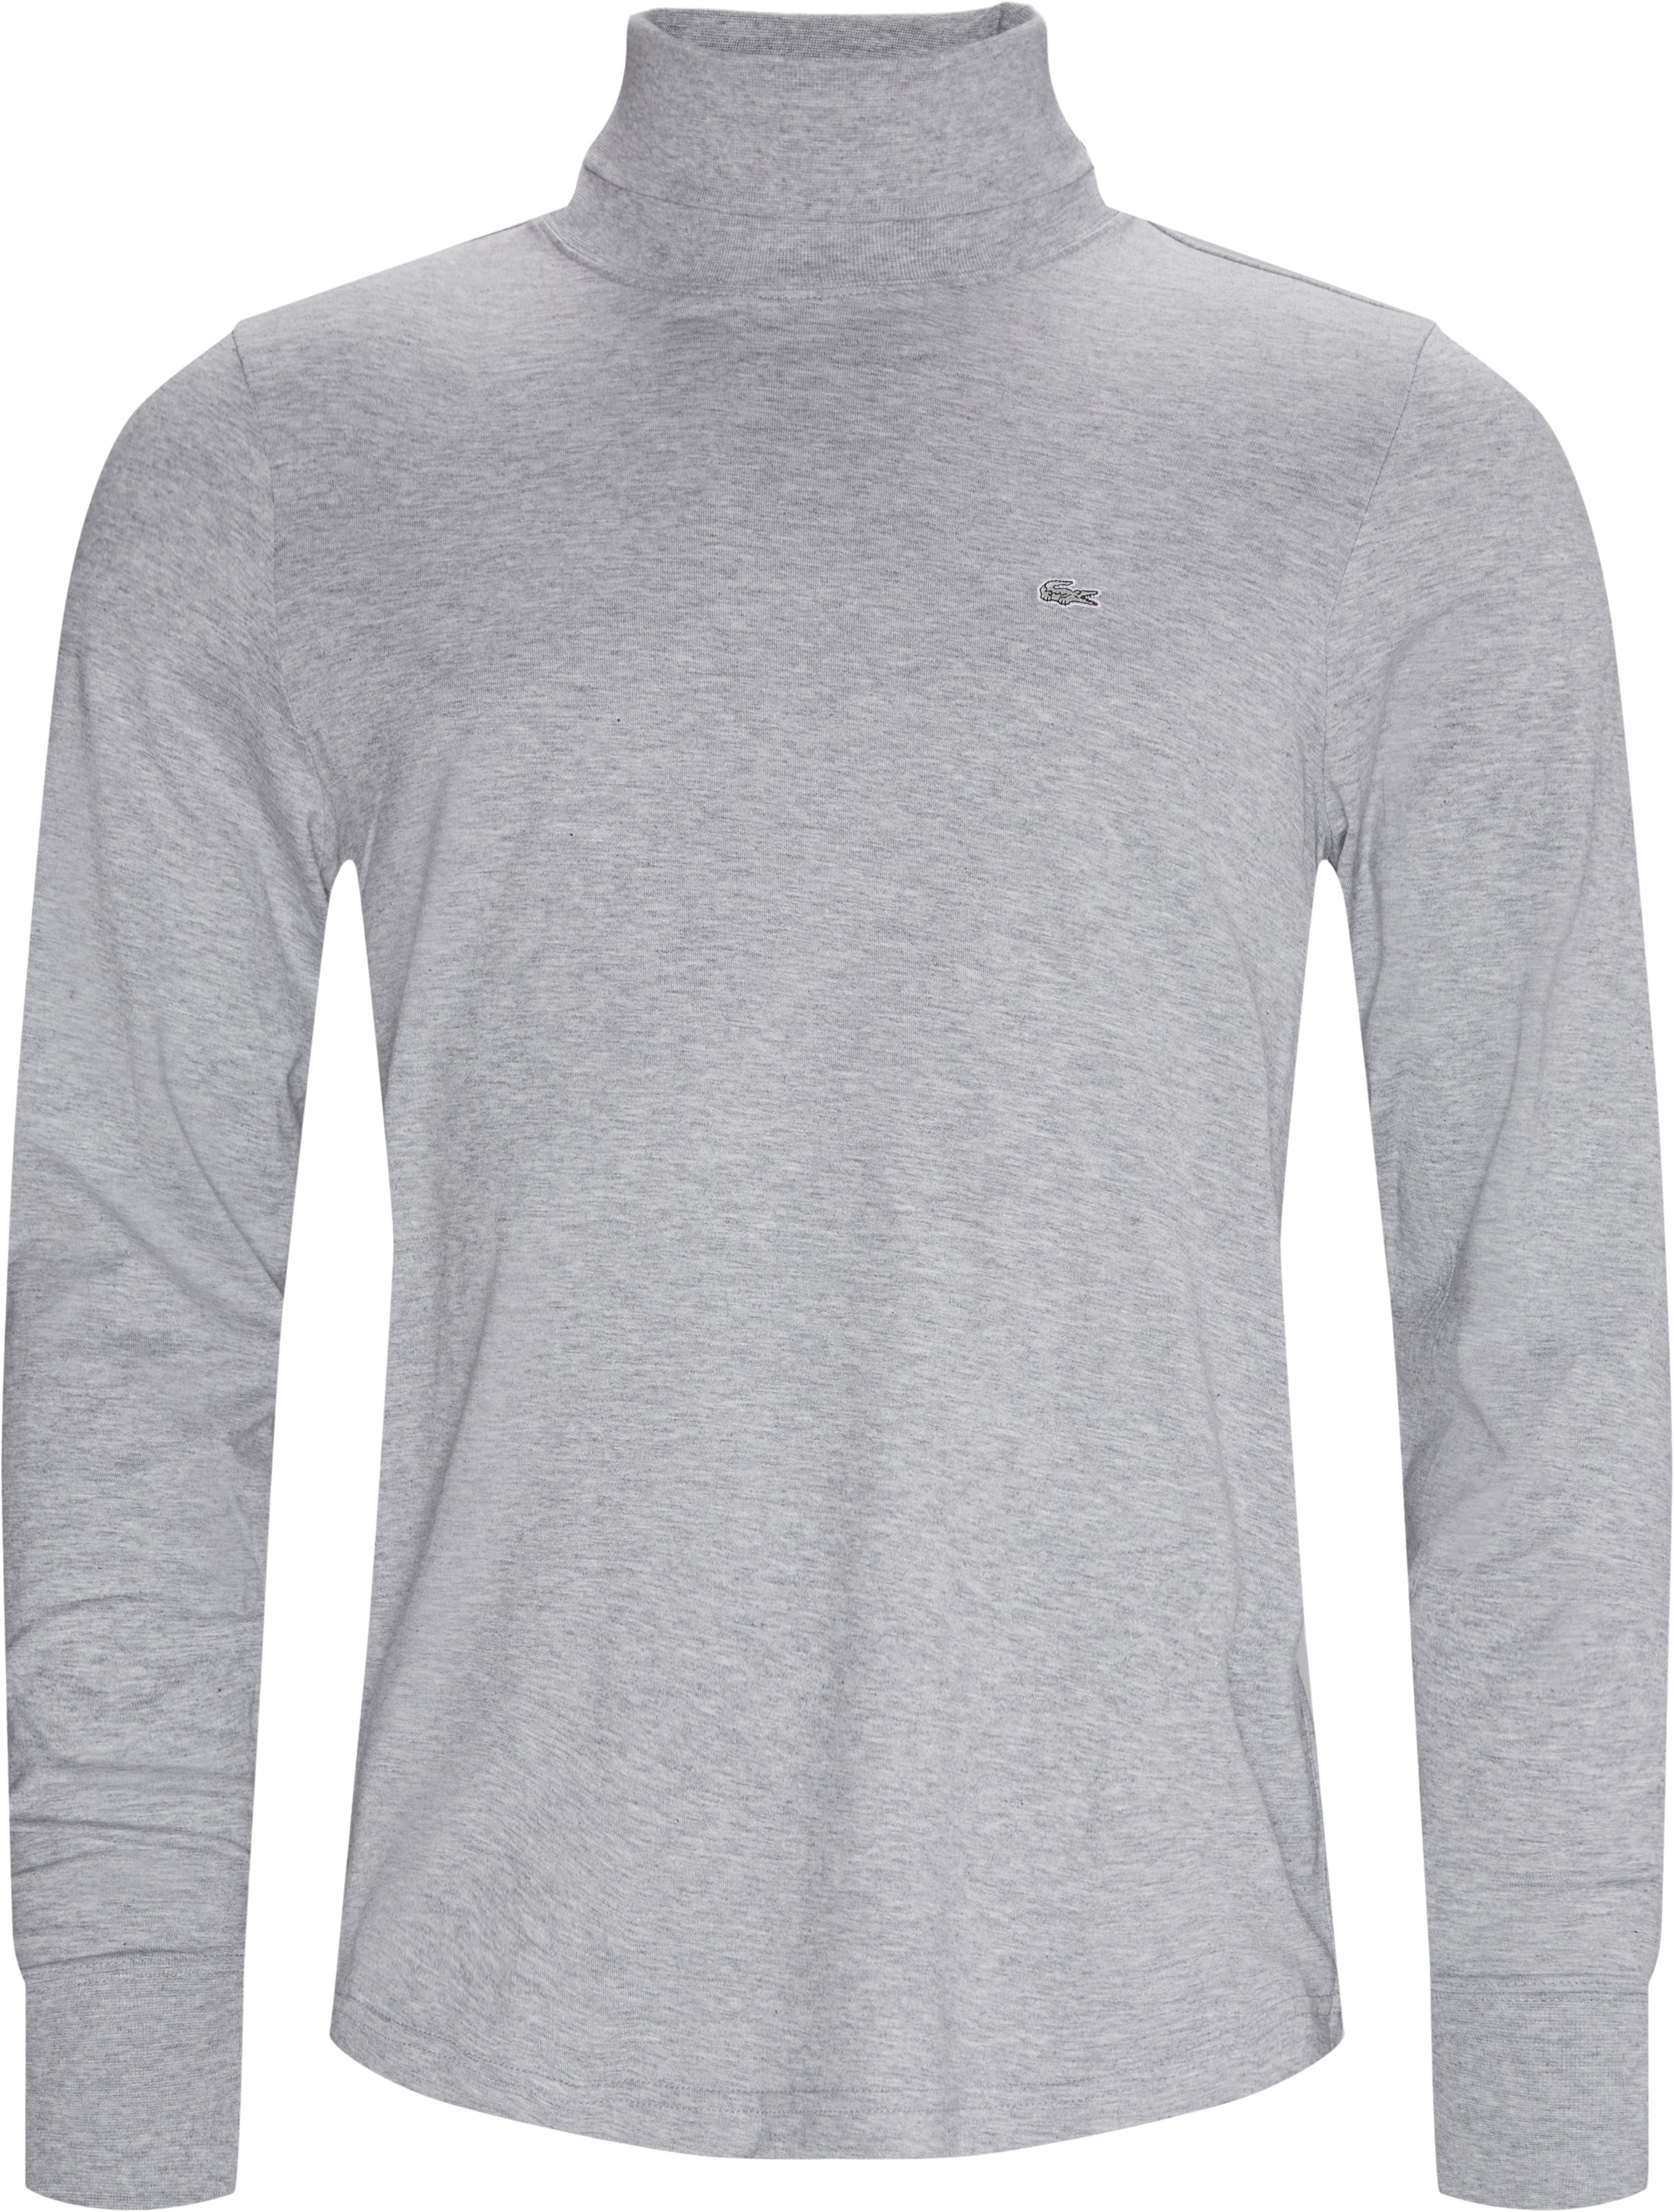 LS Turtleneck T-shirt - T-shirts - Modern fit - Grey